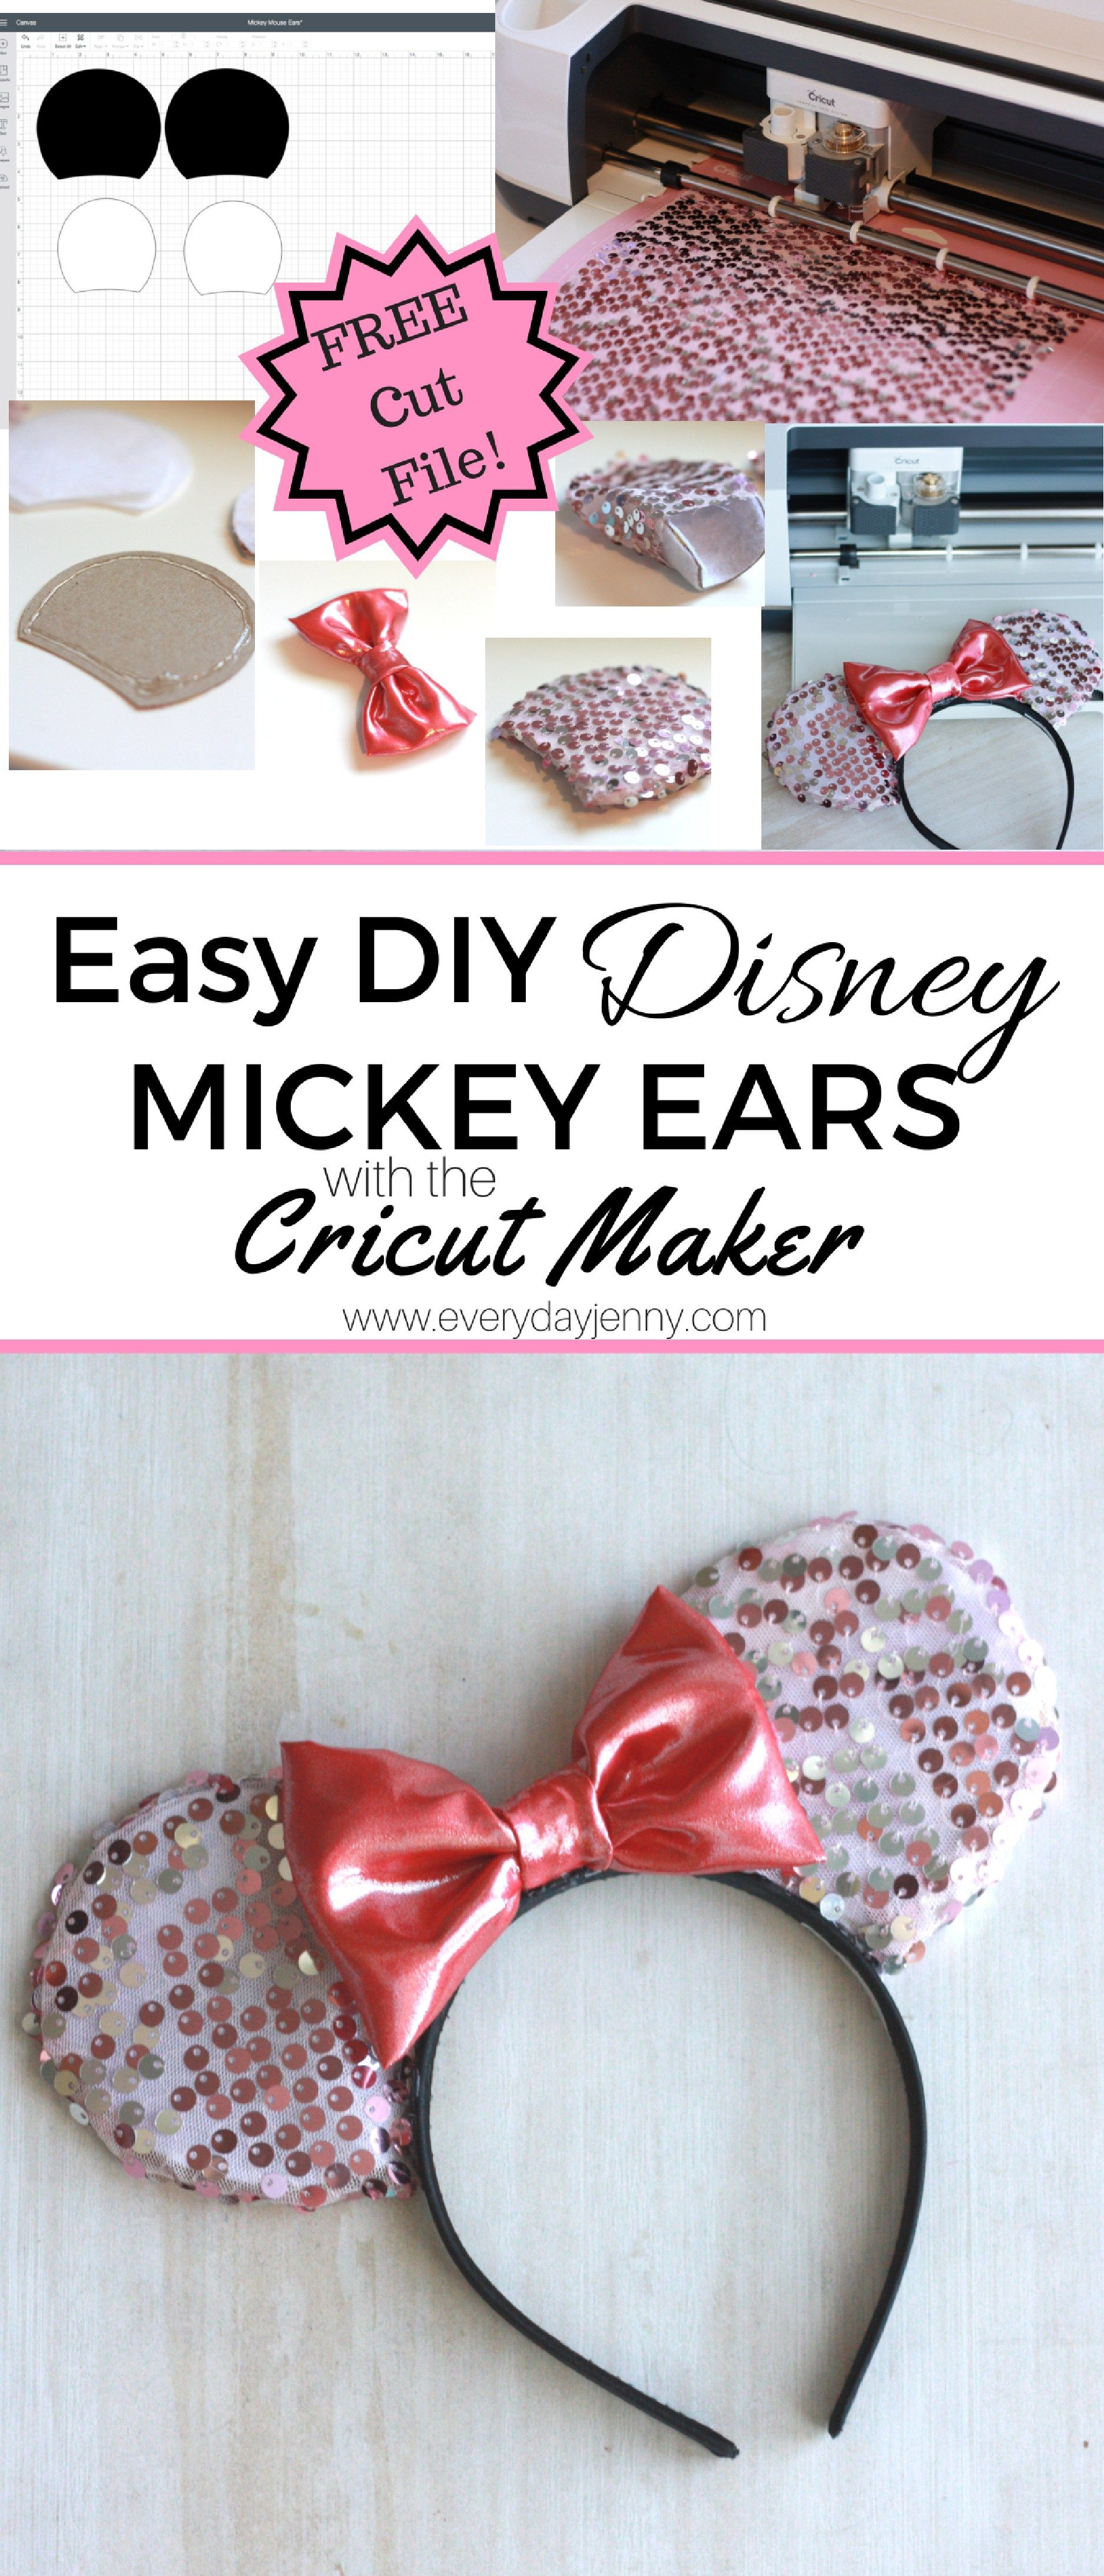 Easy DIY Disney Minnie (or Mickey) Mouse Ears tutorial  Use your